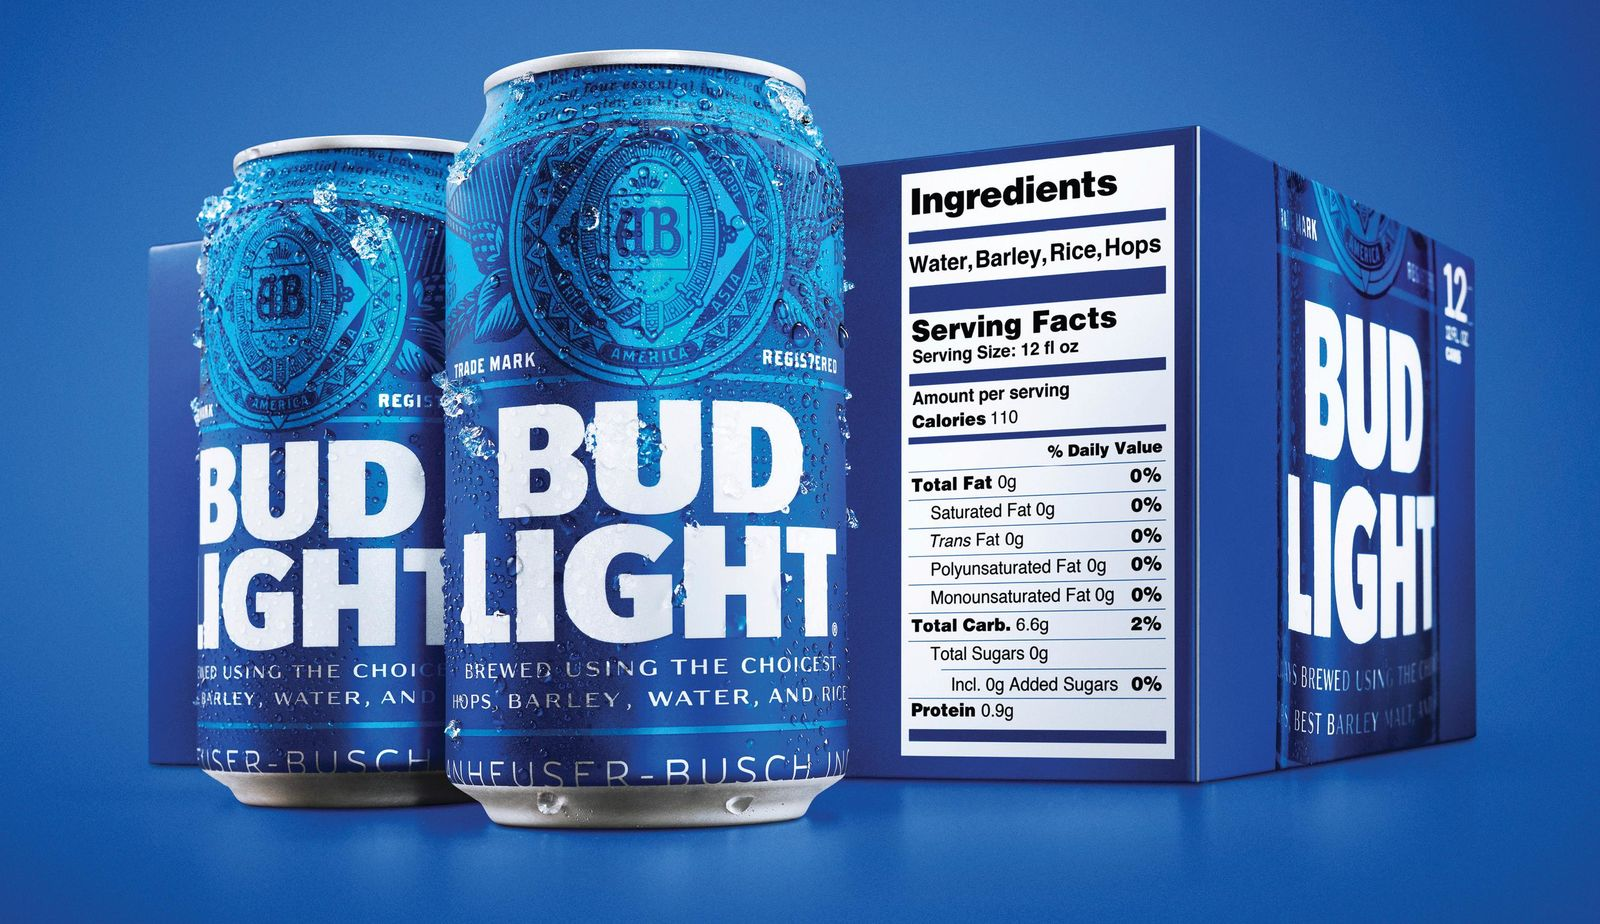 This undated product image provided by Bud Light shows a new nutrition label. Starting next month, packages of Bud Light will have prominent labels showing the beer's ingredients and calories as well as the amount of fat, carbohydrates and protein in a serving. Bud Light is likely the first of many to make the move. The labels aren't legally required, but major beer makers agreed in 2016 to voluntarily disclose nutrition facts on their products by 2020. (Bud Light via AP)